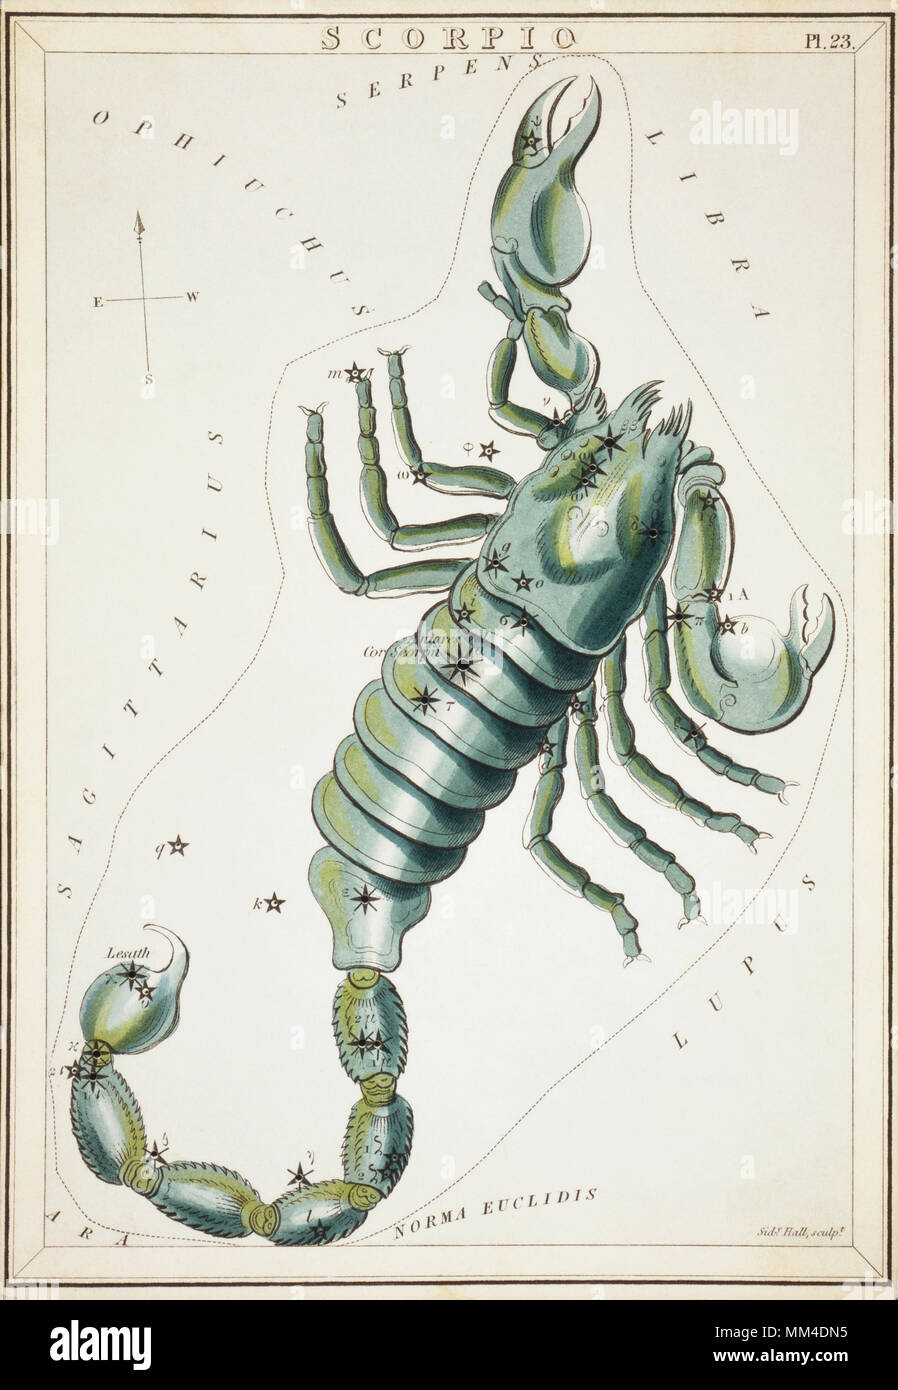 Scorpio.  Card Number 23 from Urania's Mirror, or A View of the Heavens, one of a set of 32 astronomical star chart cards engraved by Sidney Hall and publshed 1824. - Stock Image